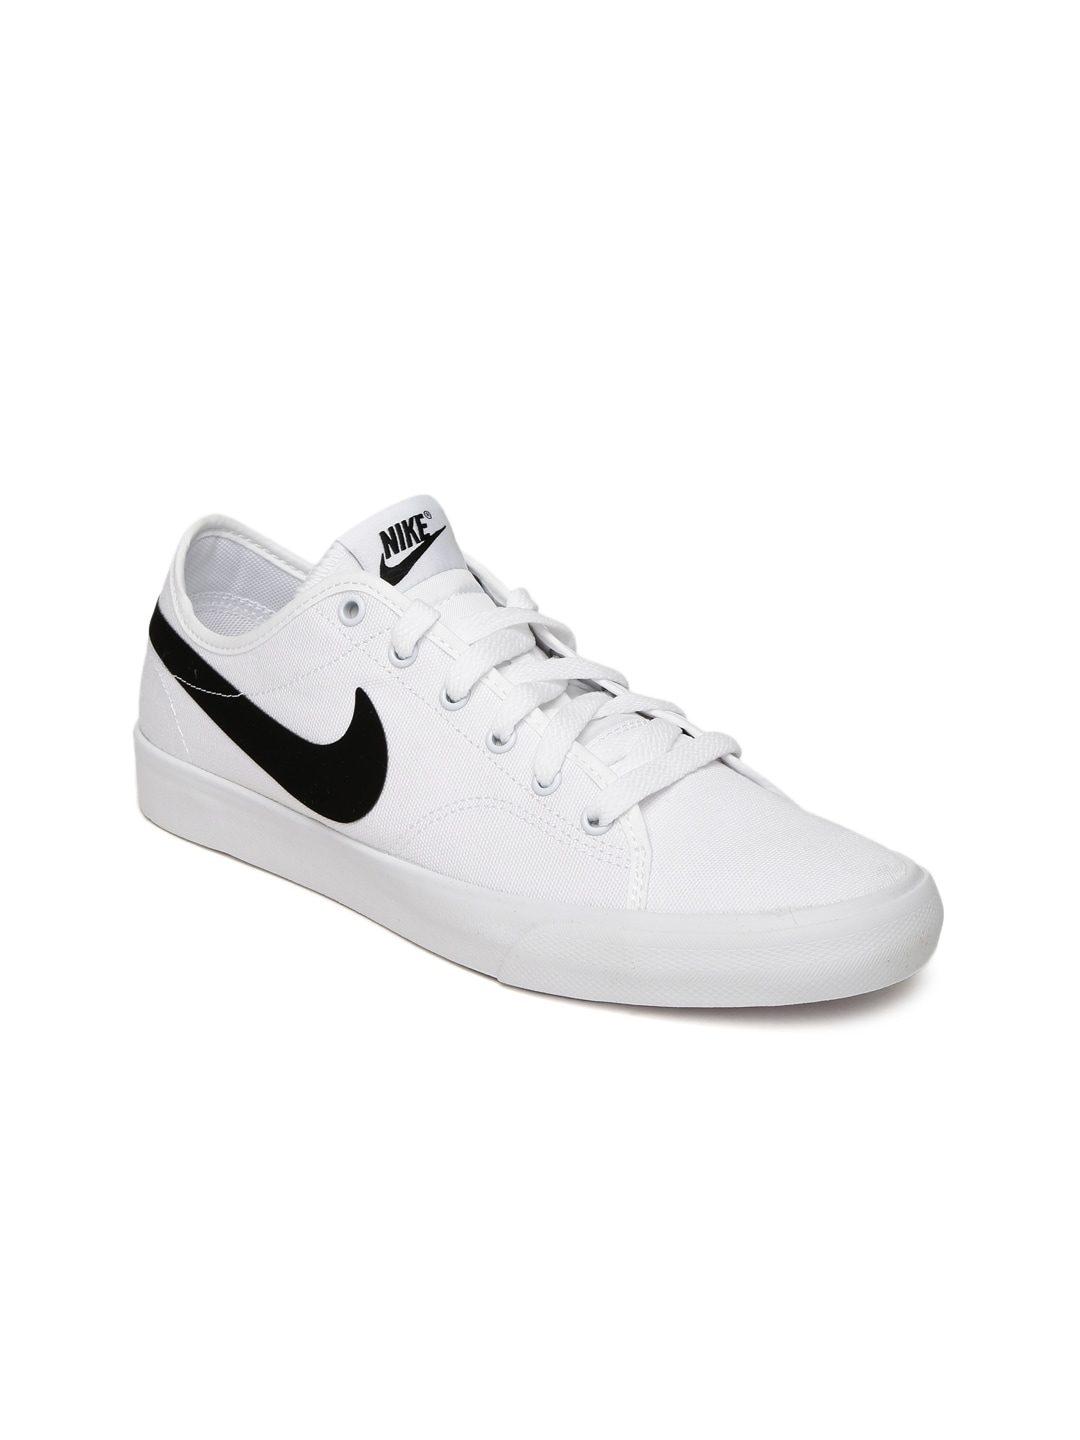 d07b317dabbd Nike T s Bra Casual Shoes - Buy Nike T s Bra Casual Shoes online in India